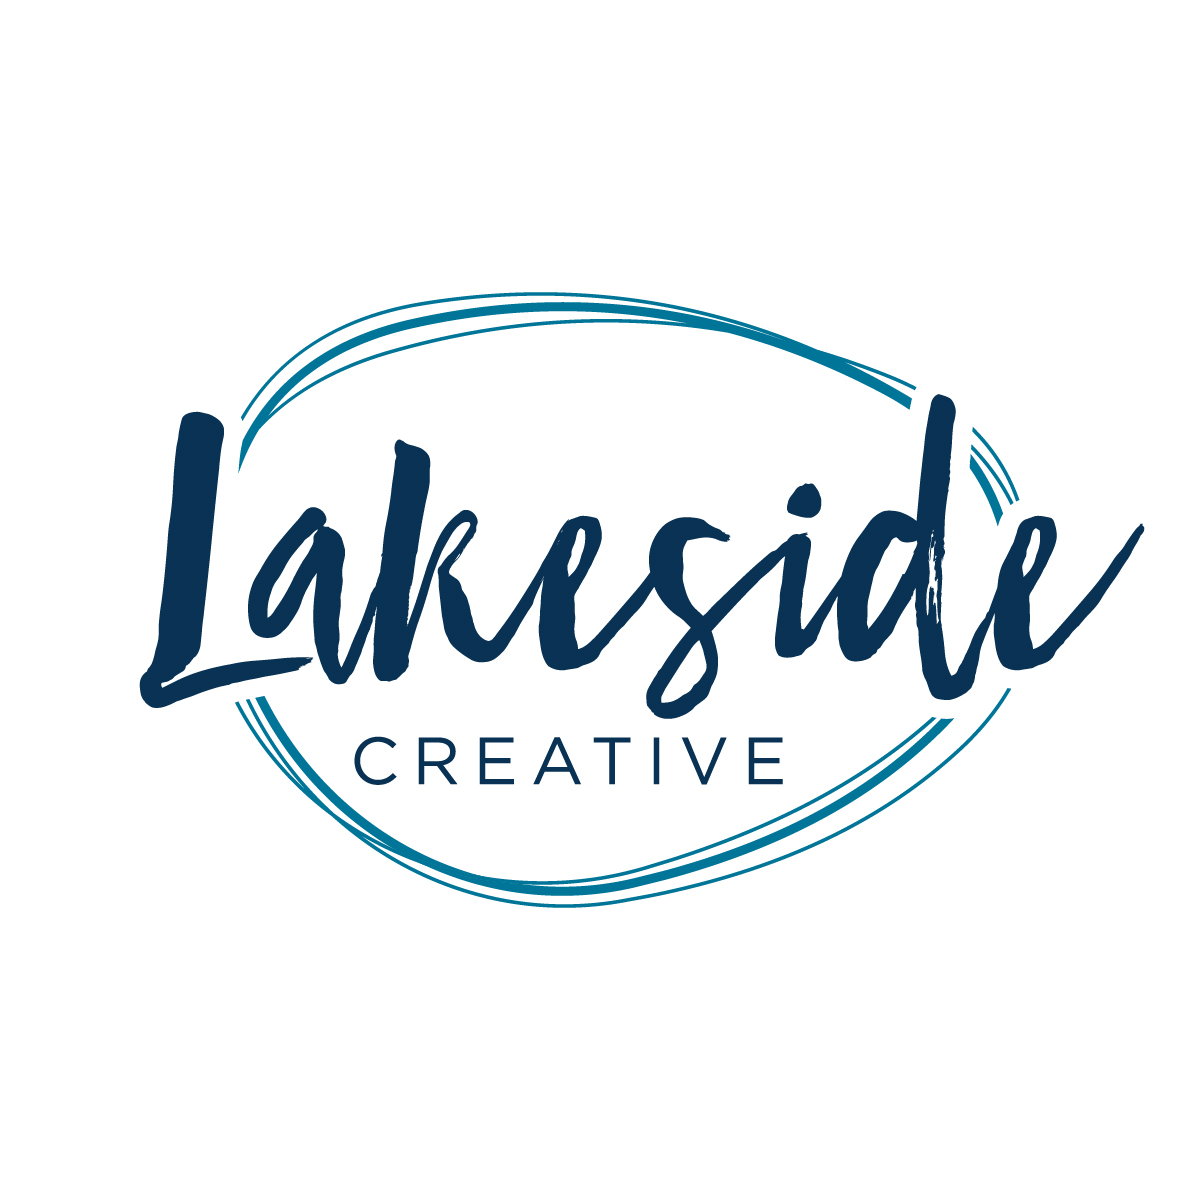 Lakeside Creative